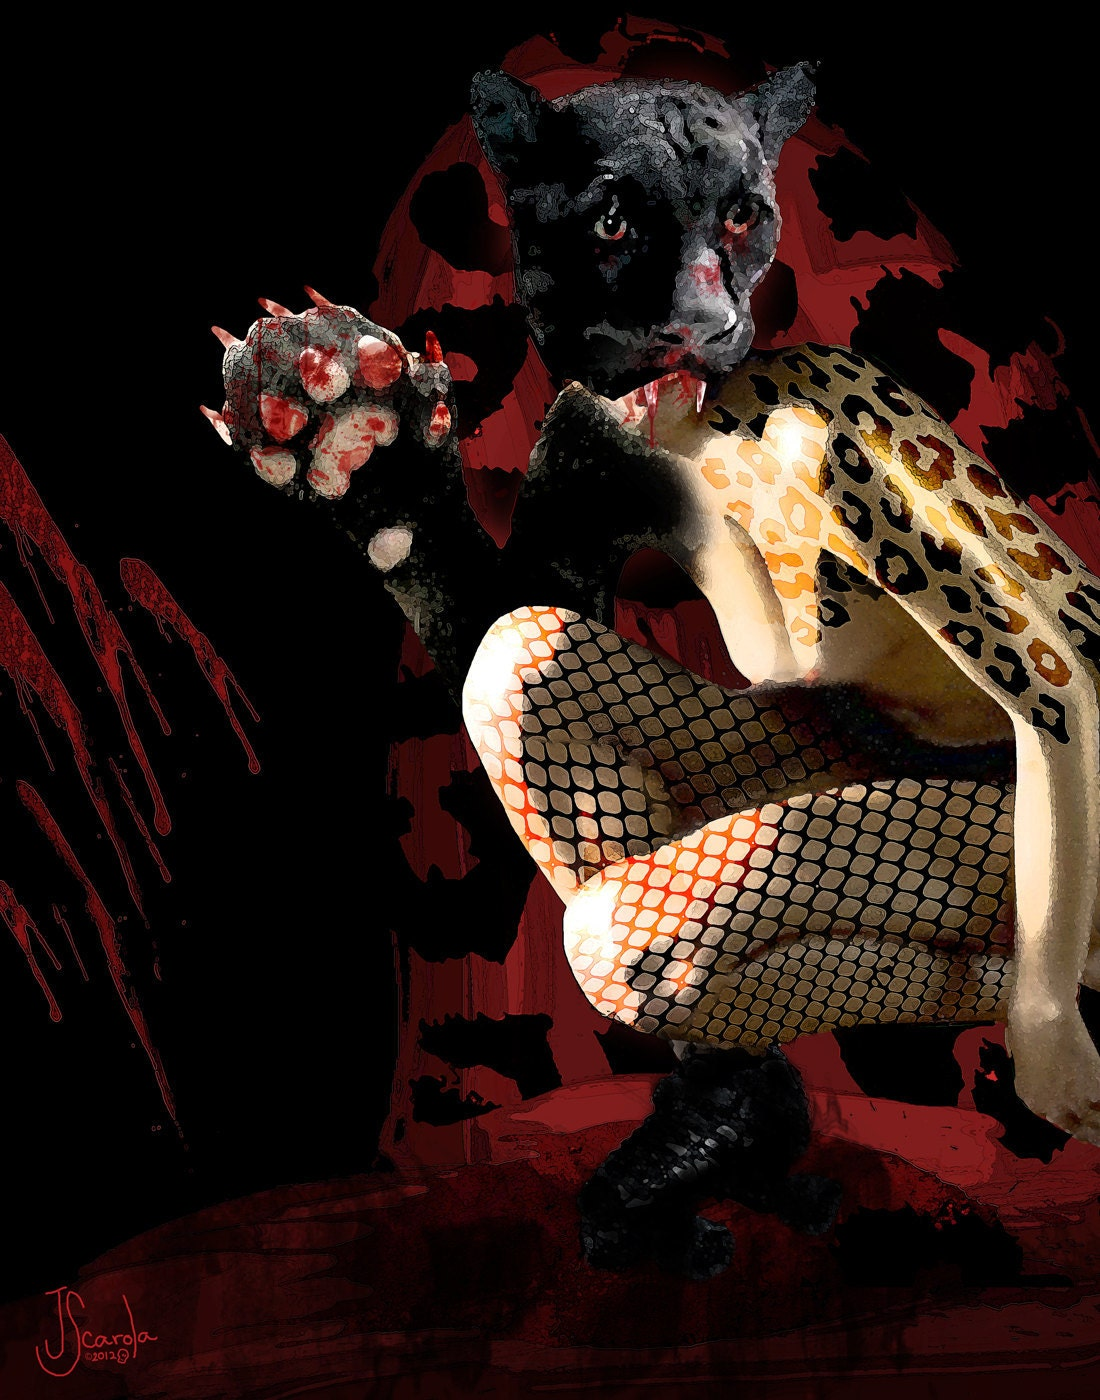 Skate Panther Derby Skater Nude Digital Painting Graphic Art